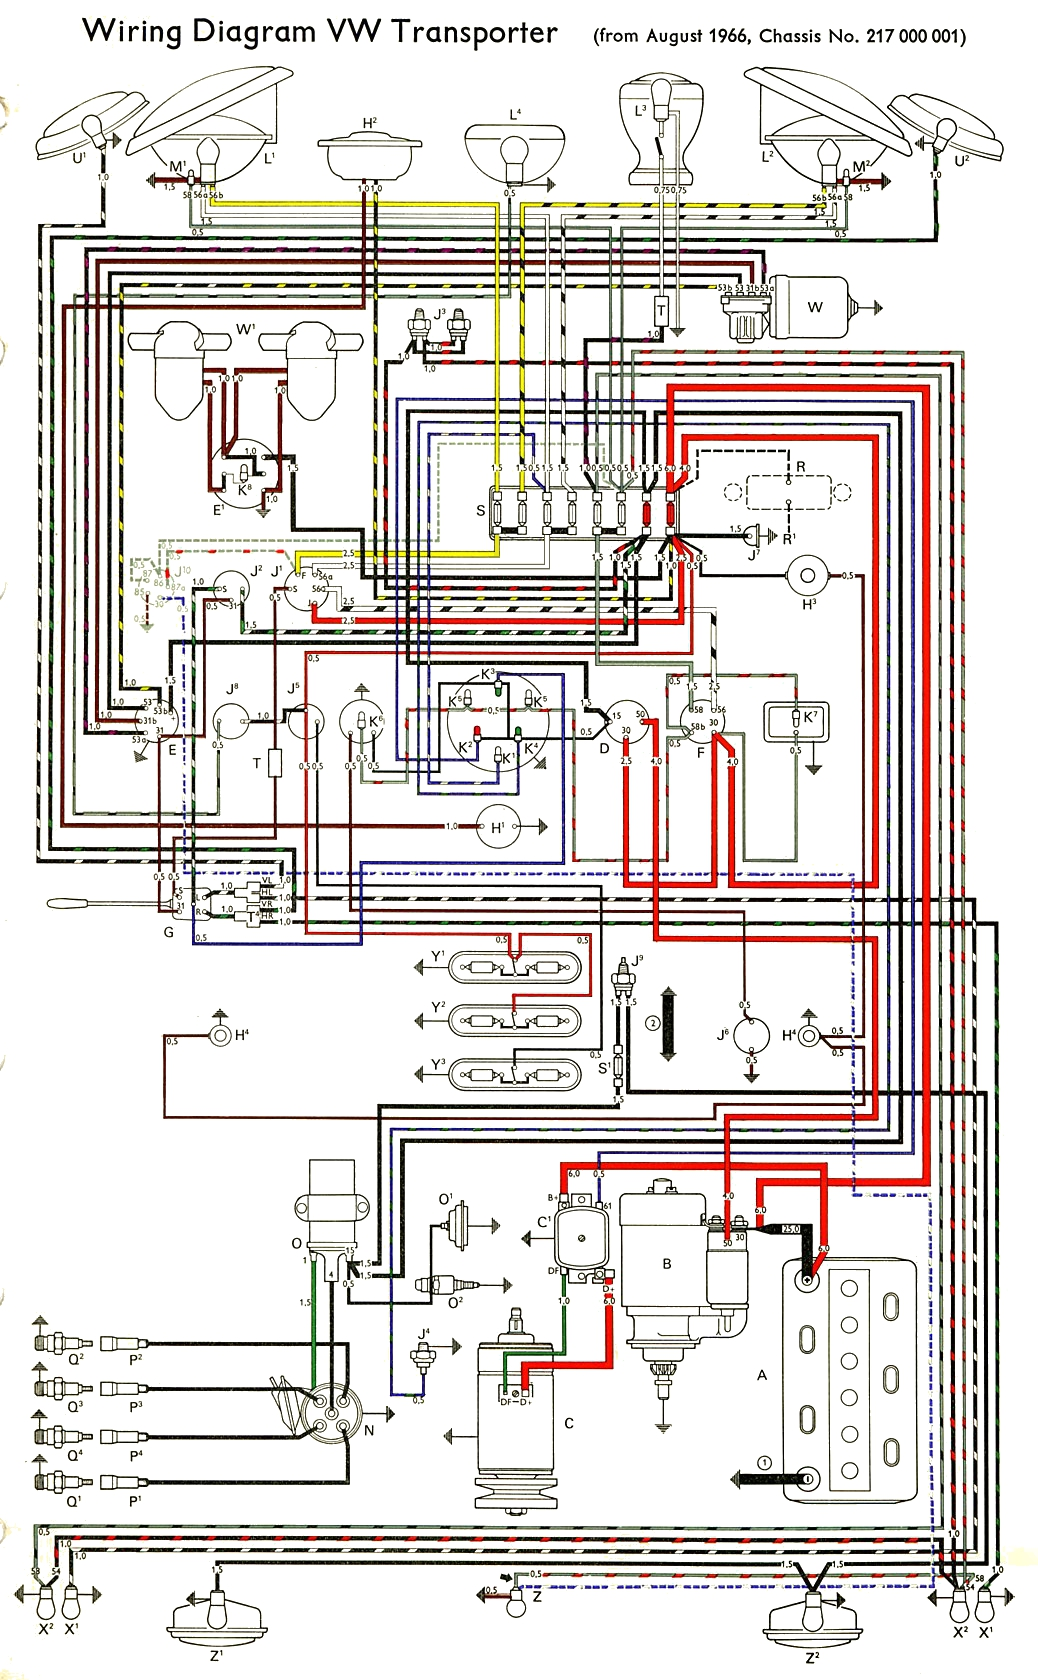 bus_67 thesamba com type 2 wiring diagrams vw transporter fuse box layout 2014 at crackthecode.co